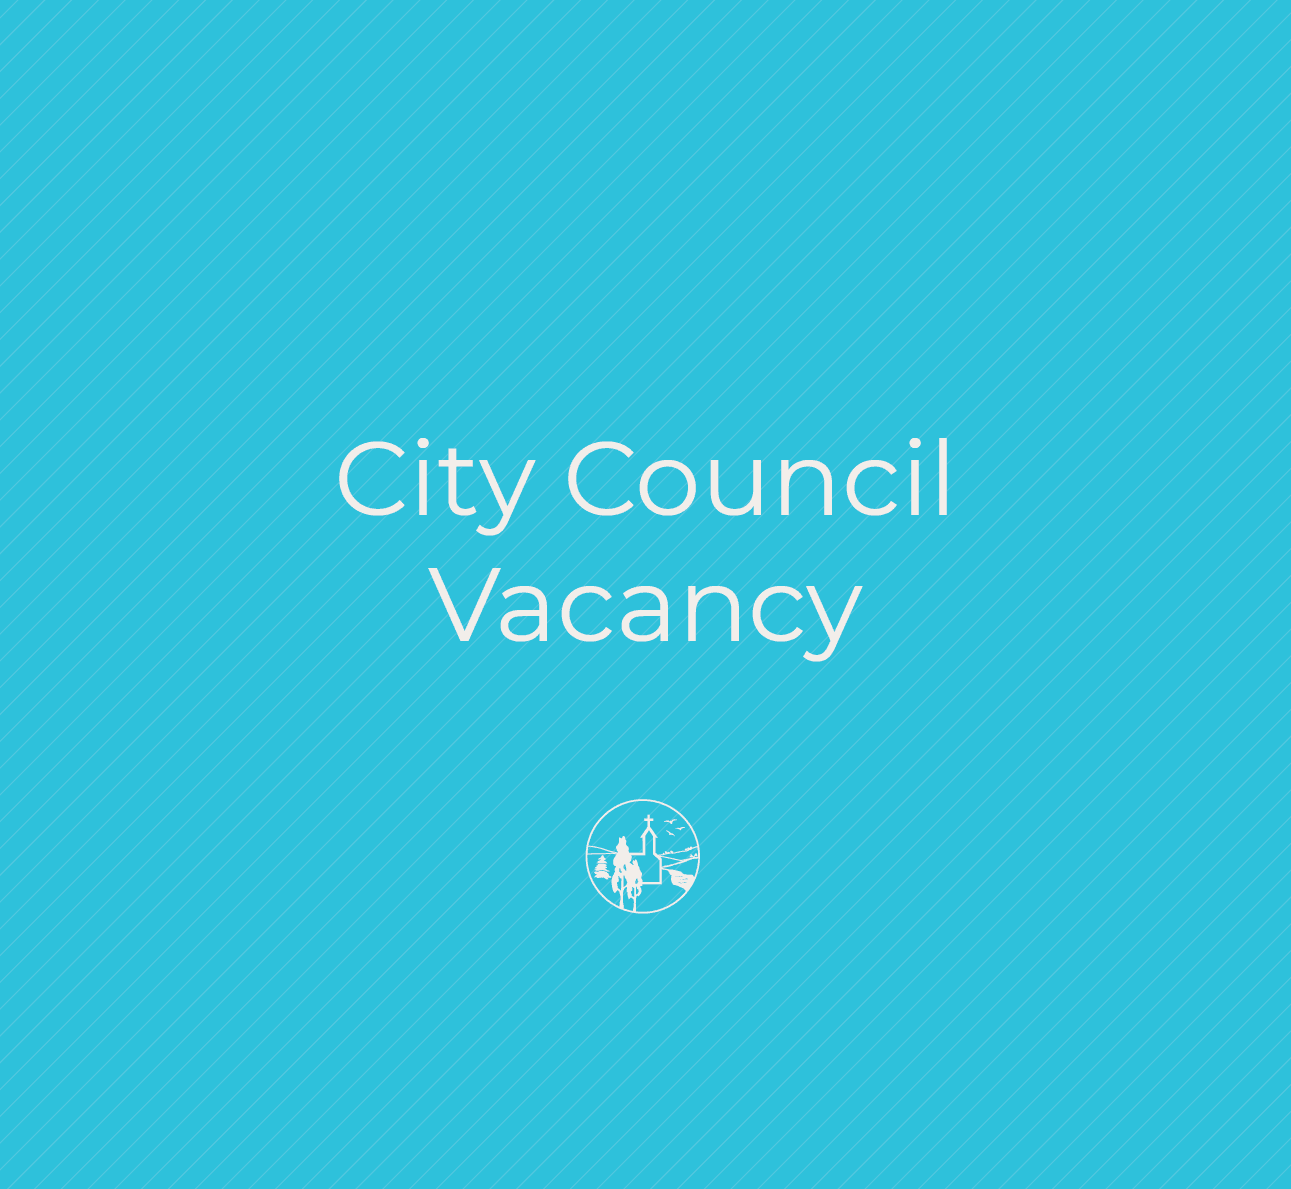 City Council Vacancy in text with City of Victoria logo below. Logo has a church and trees.